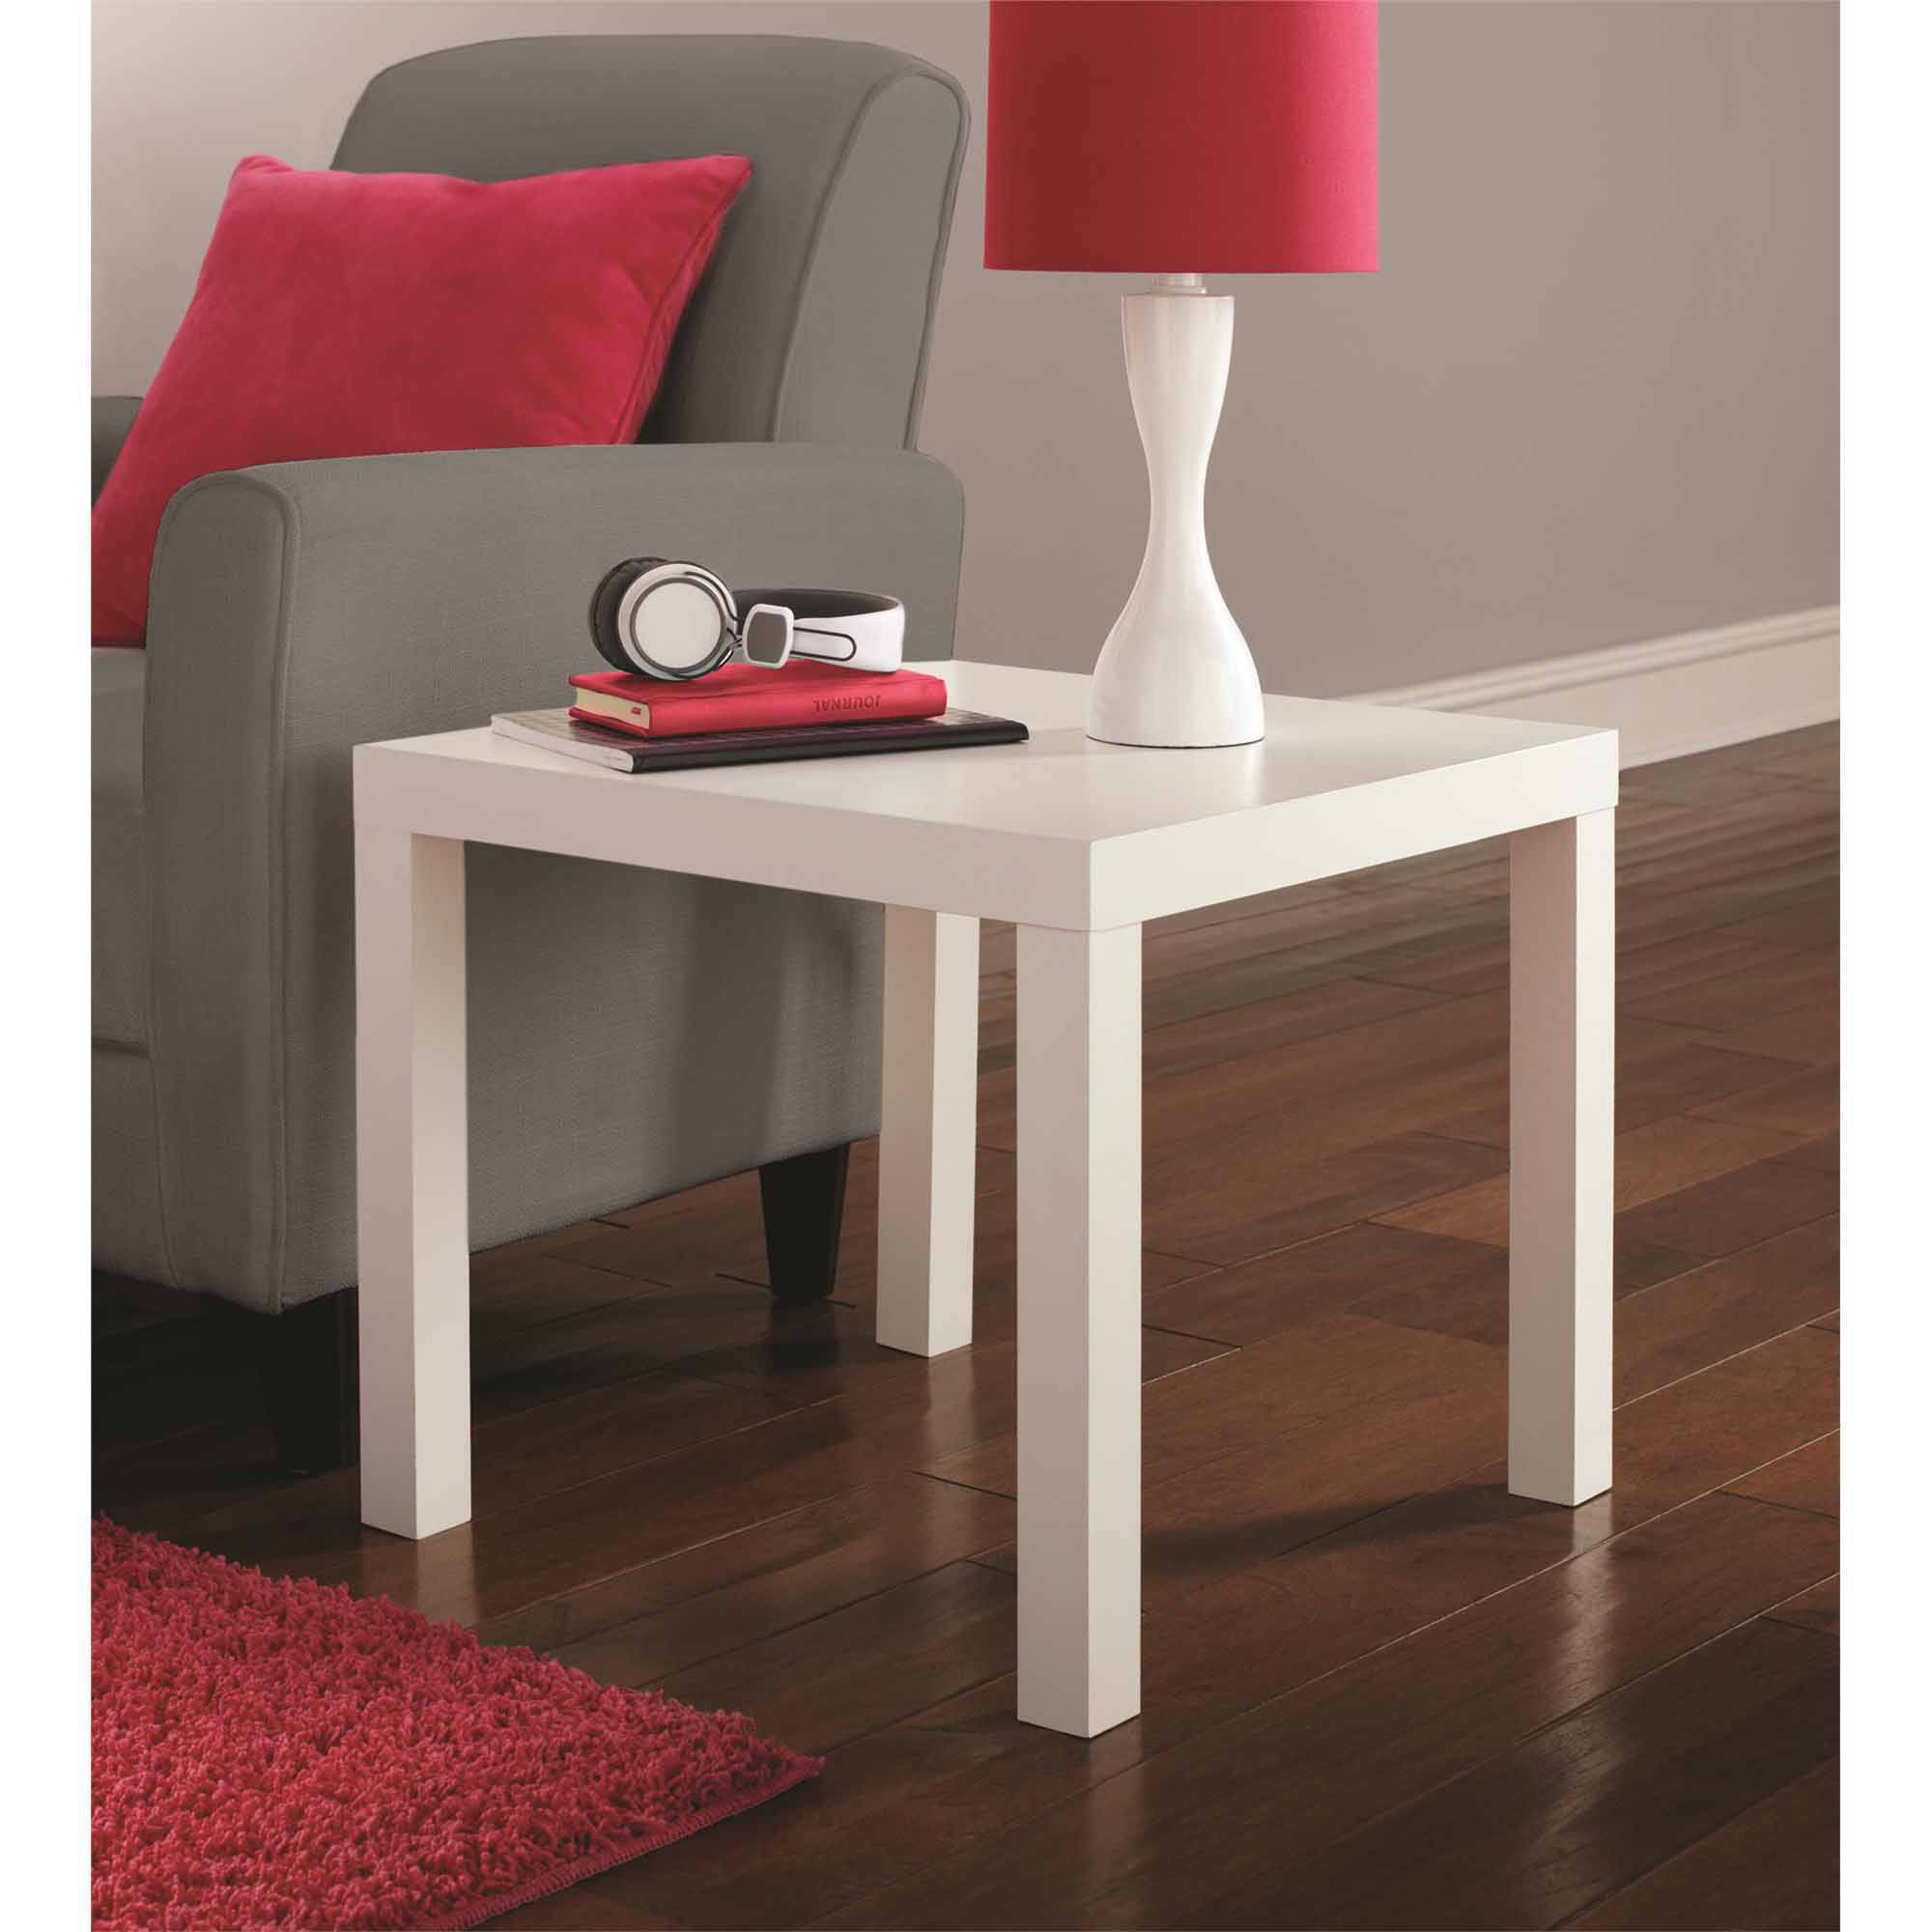 Mainstays Parsons Table, White